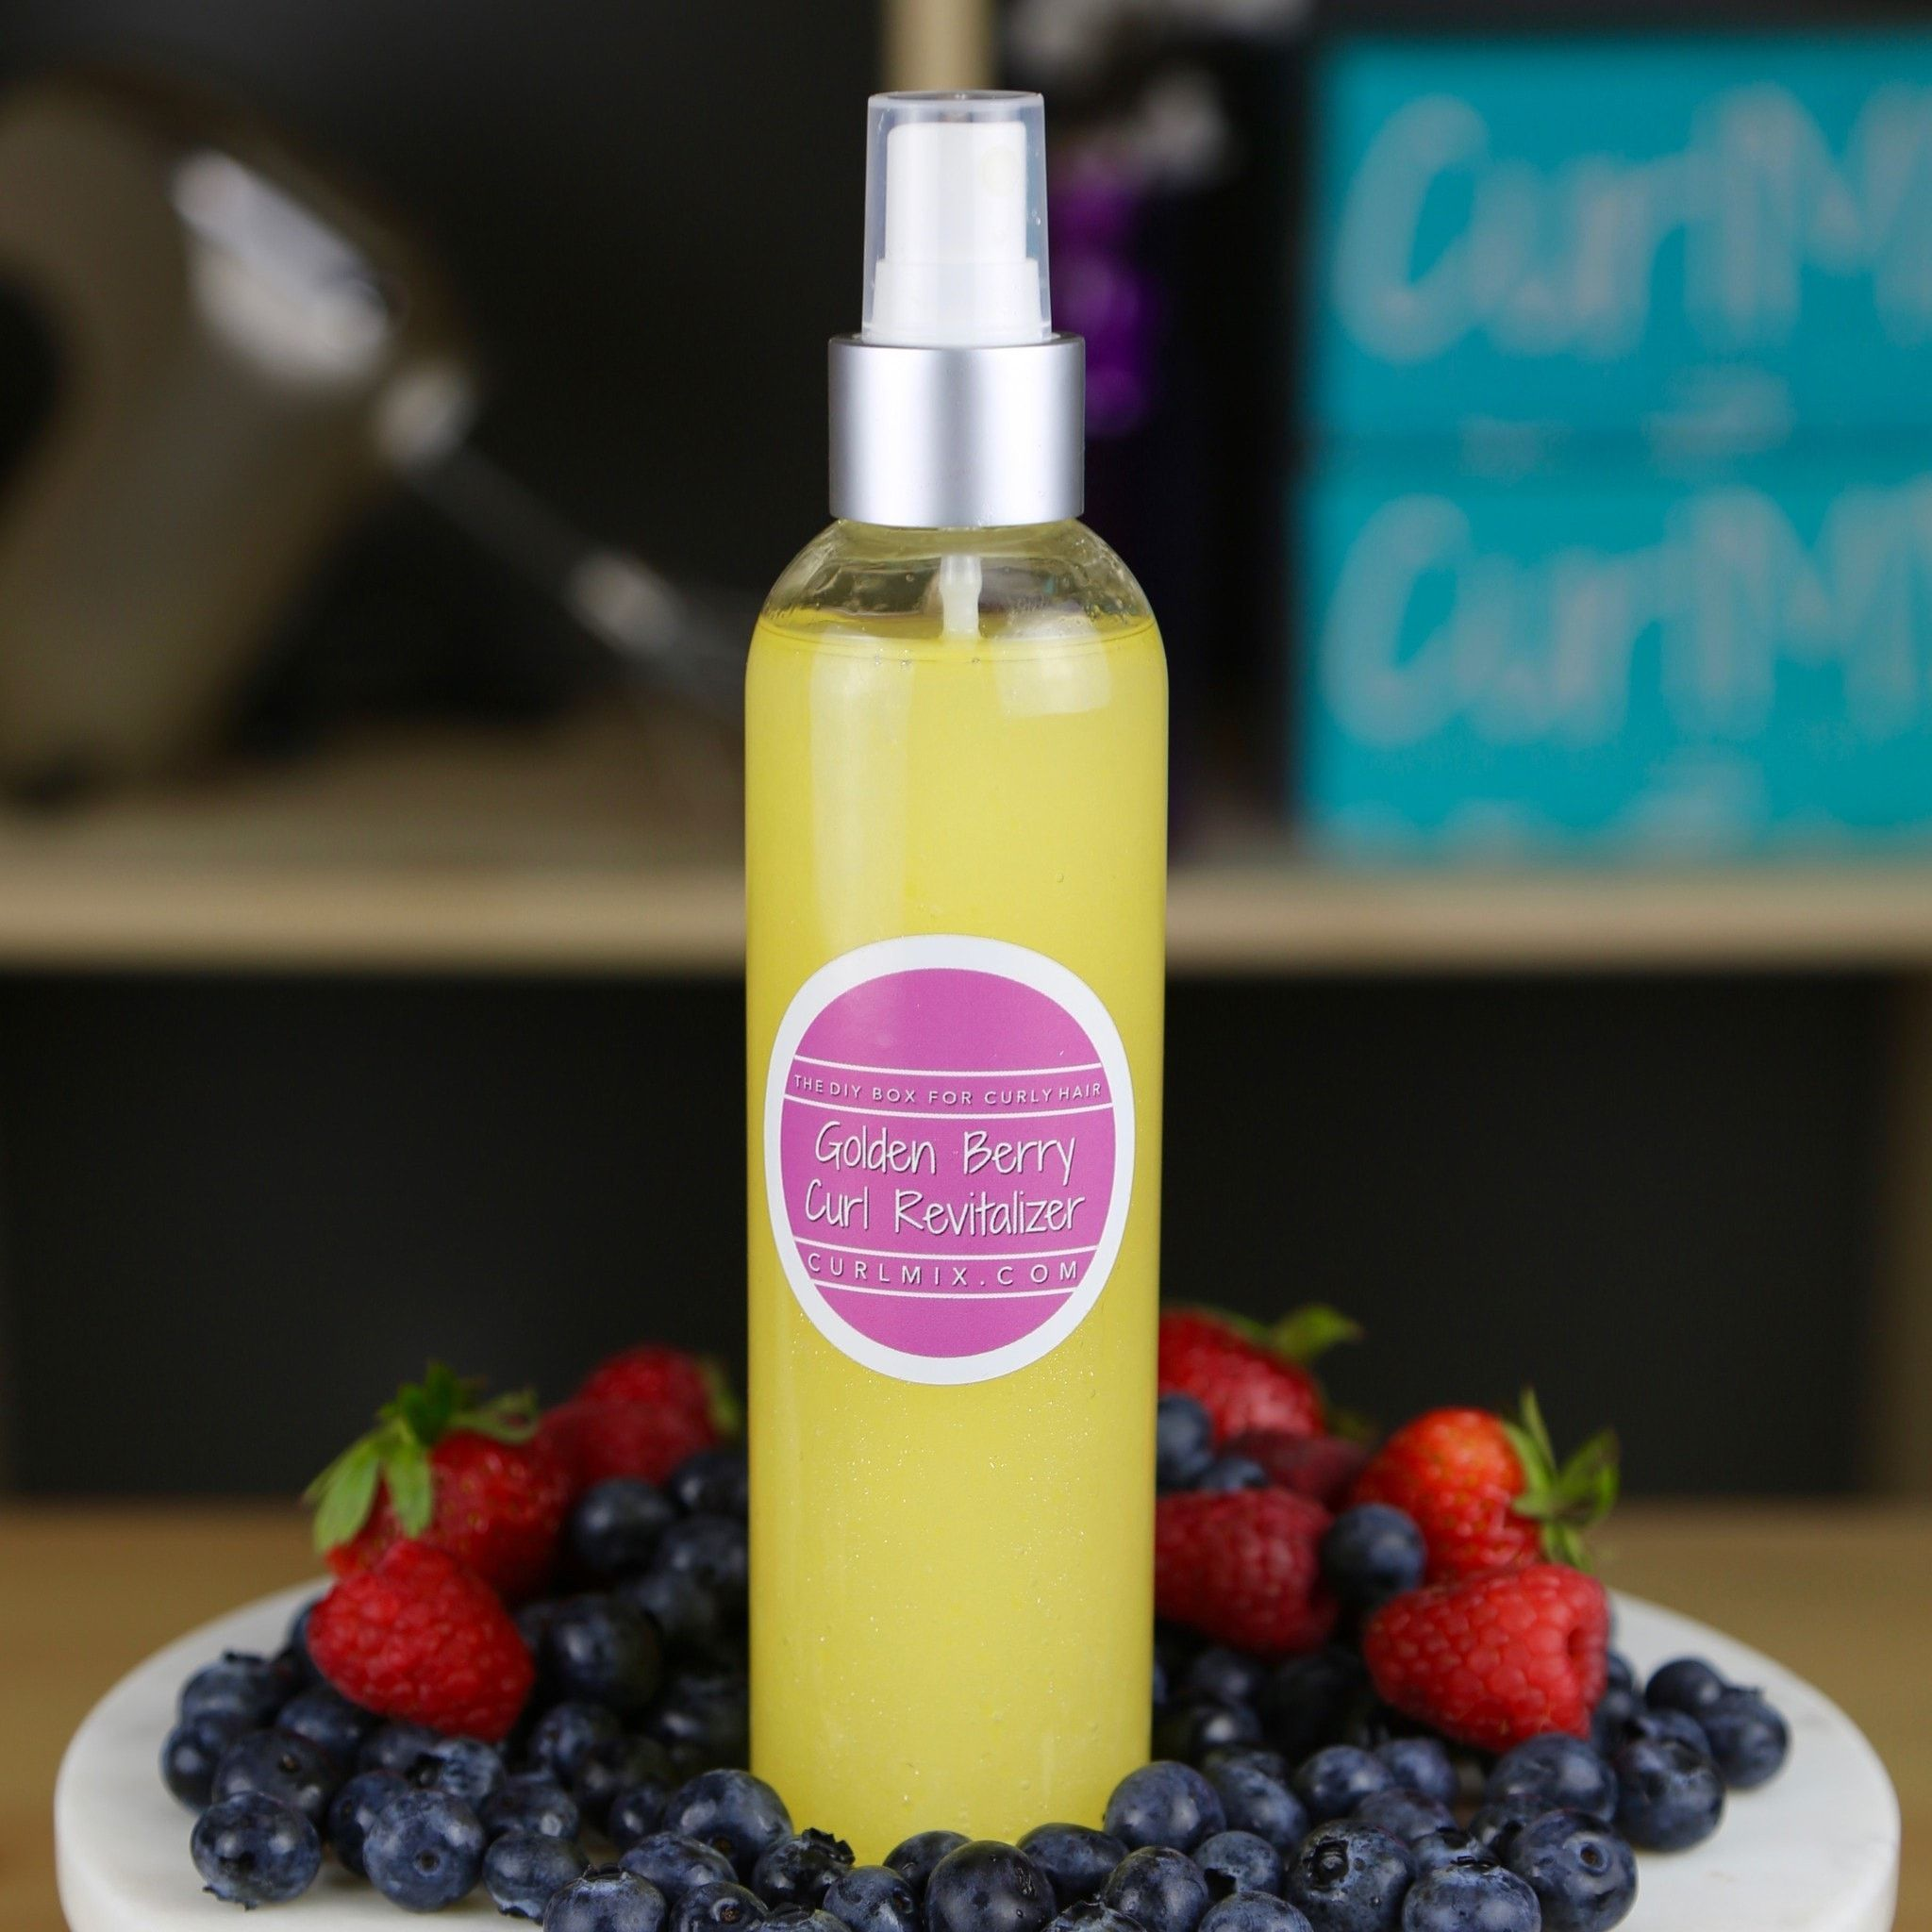 Golden Berry Curl Revitalizing Spray - CurlMix